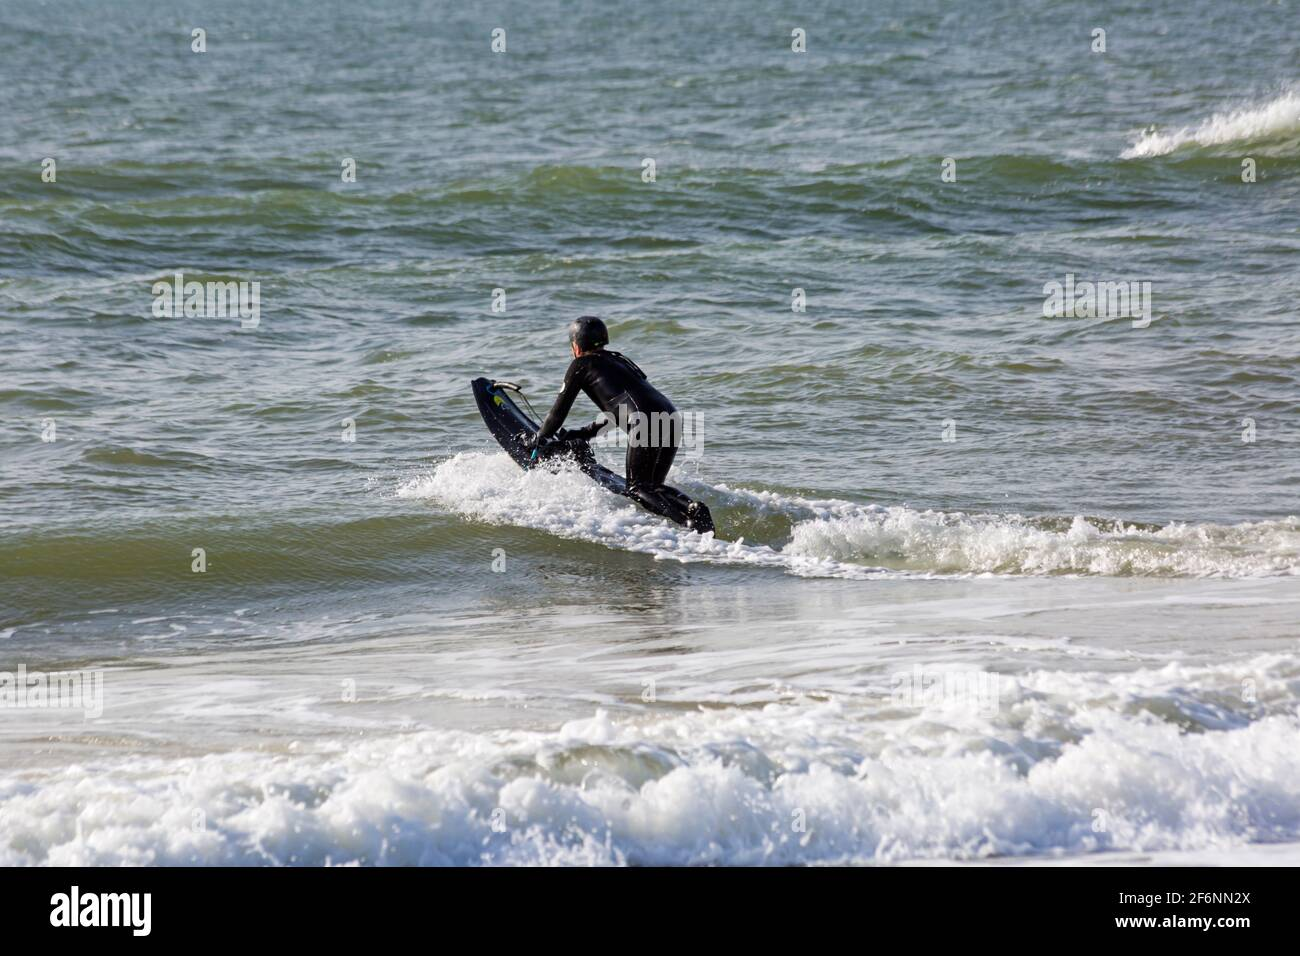 Poole, Dorset UK. 2nd April 2021. Easter Friday. UK weather: sunny, cool and breezy for the start of the long Easter bank holiday weekend at Poole beaches as people head to the seaside. Mako jet boarder makes the most of the conditions before it gets busy. Credit: Carolyn Jenkins/Alamy Live News Stock Photo